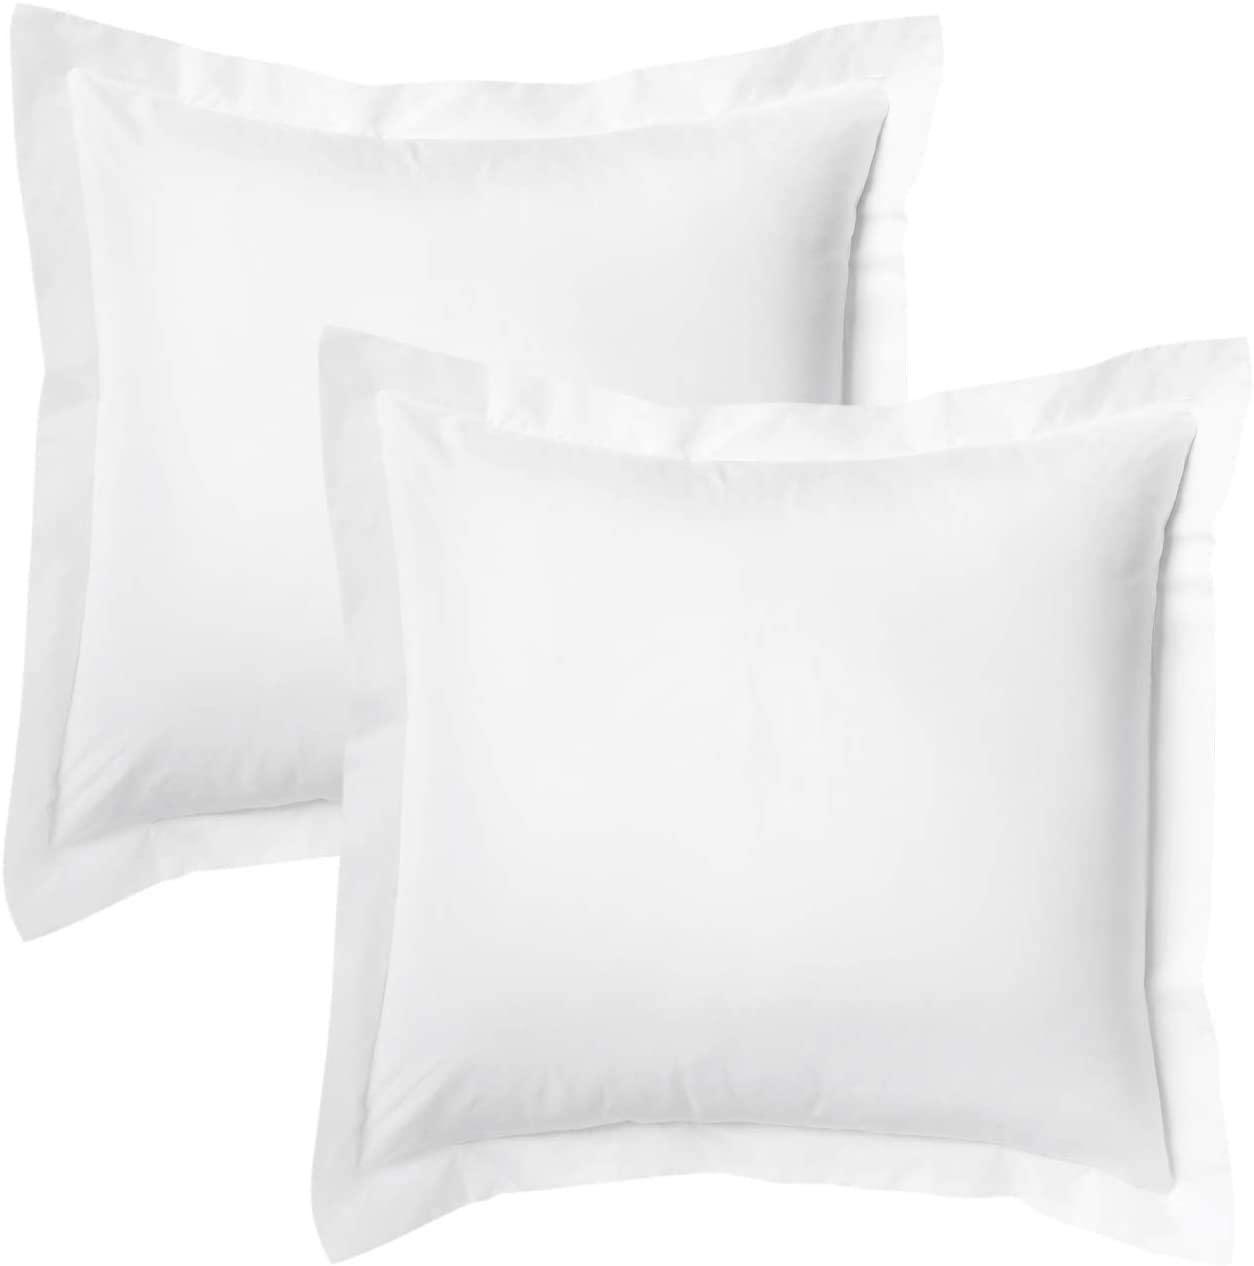 United Homes Luxurious 1000 Thread Count, Pillow Sham 100% Cotton, 2 Inch Border Pillow Cover, (Euro/European Sized 26 by 26 inch) White, Set of 2